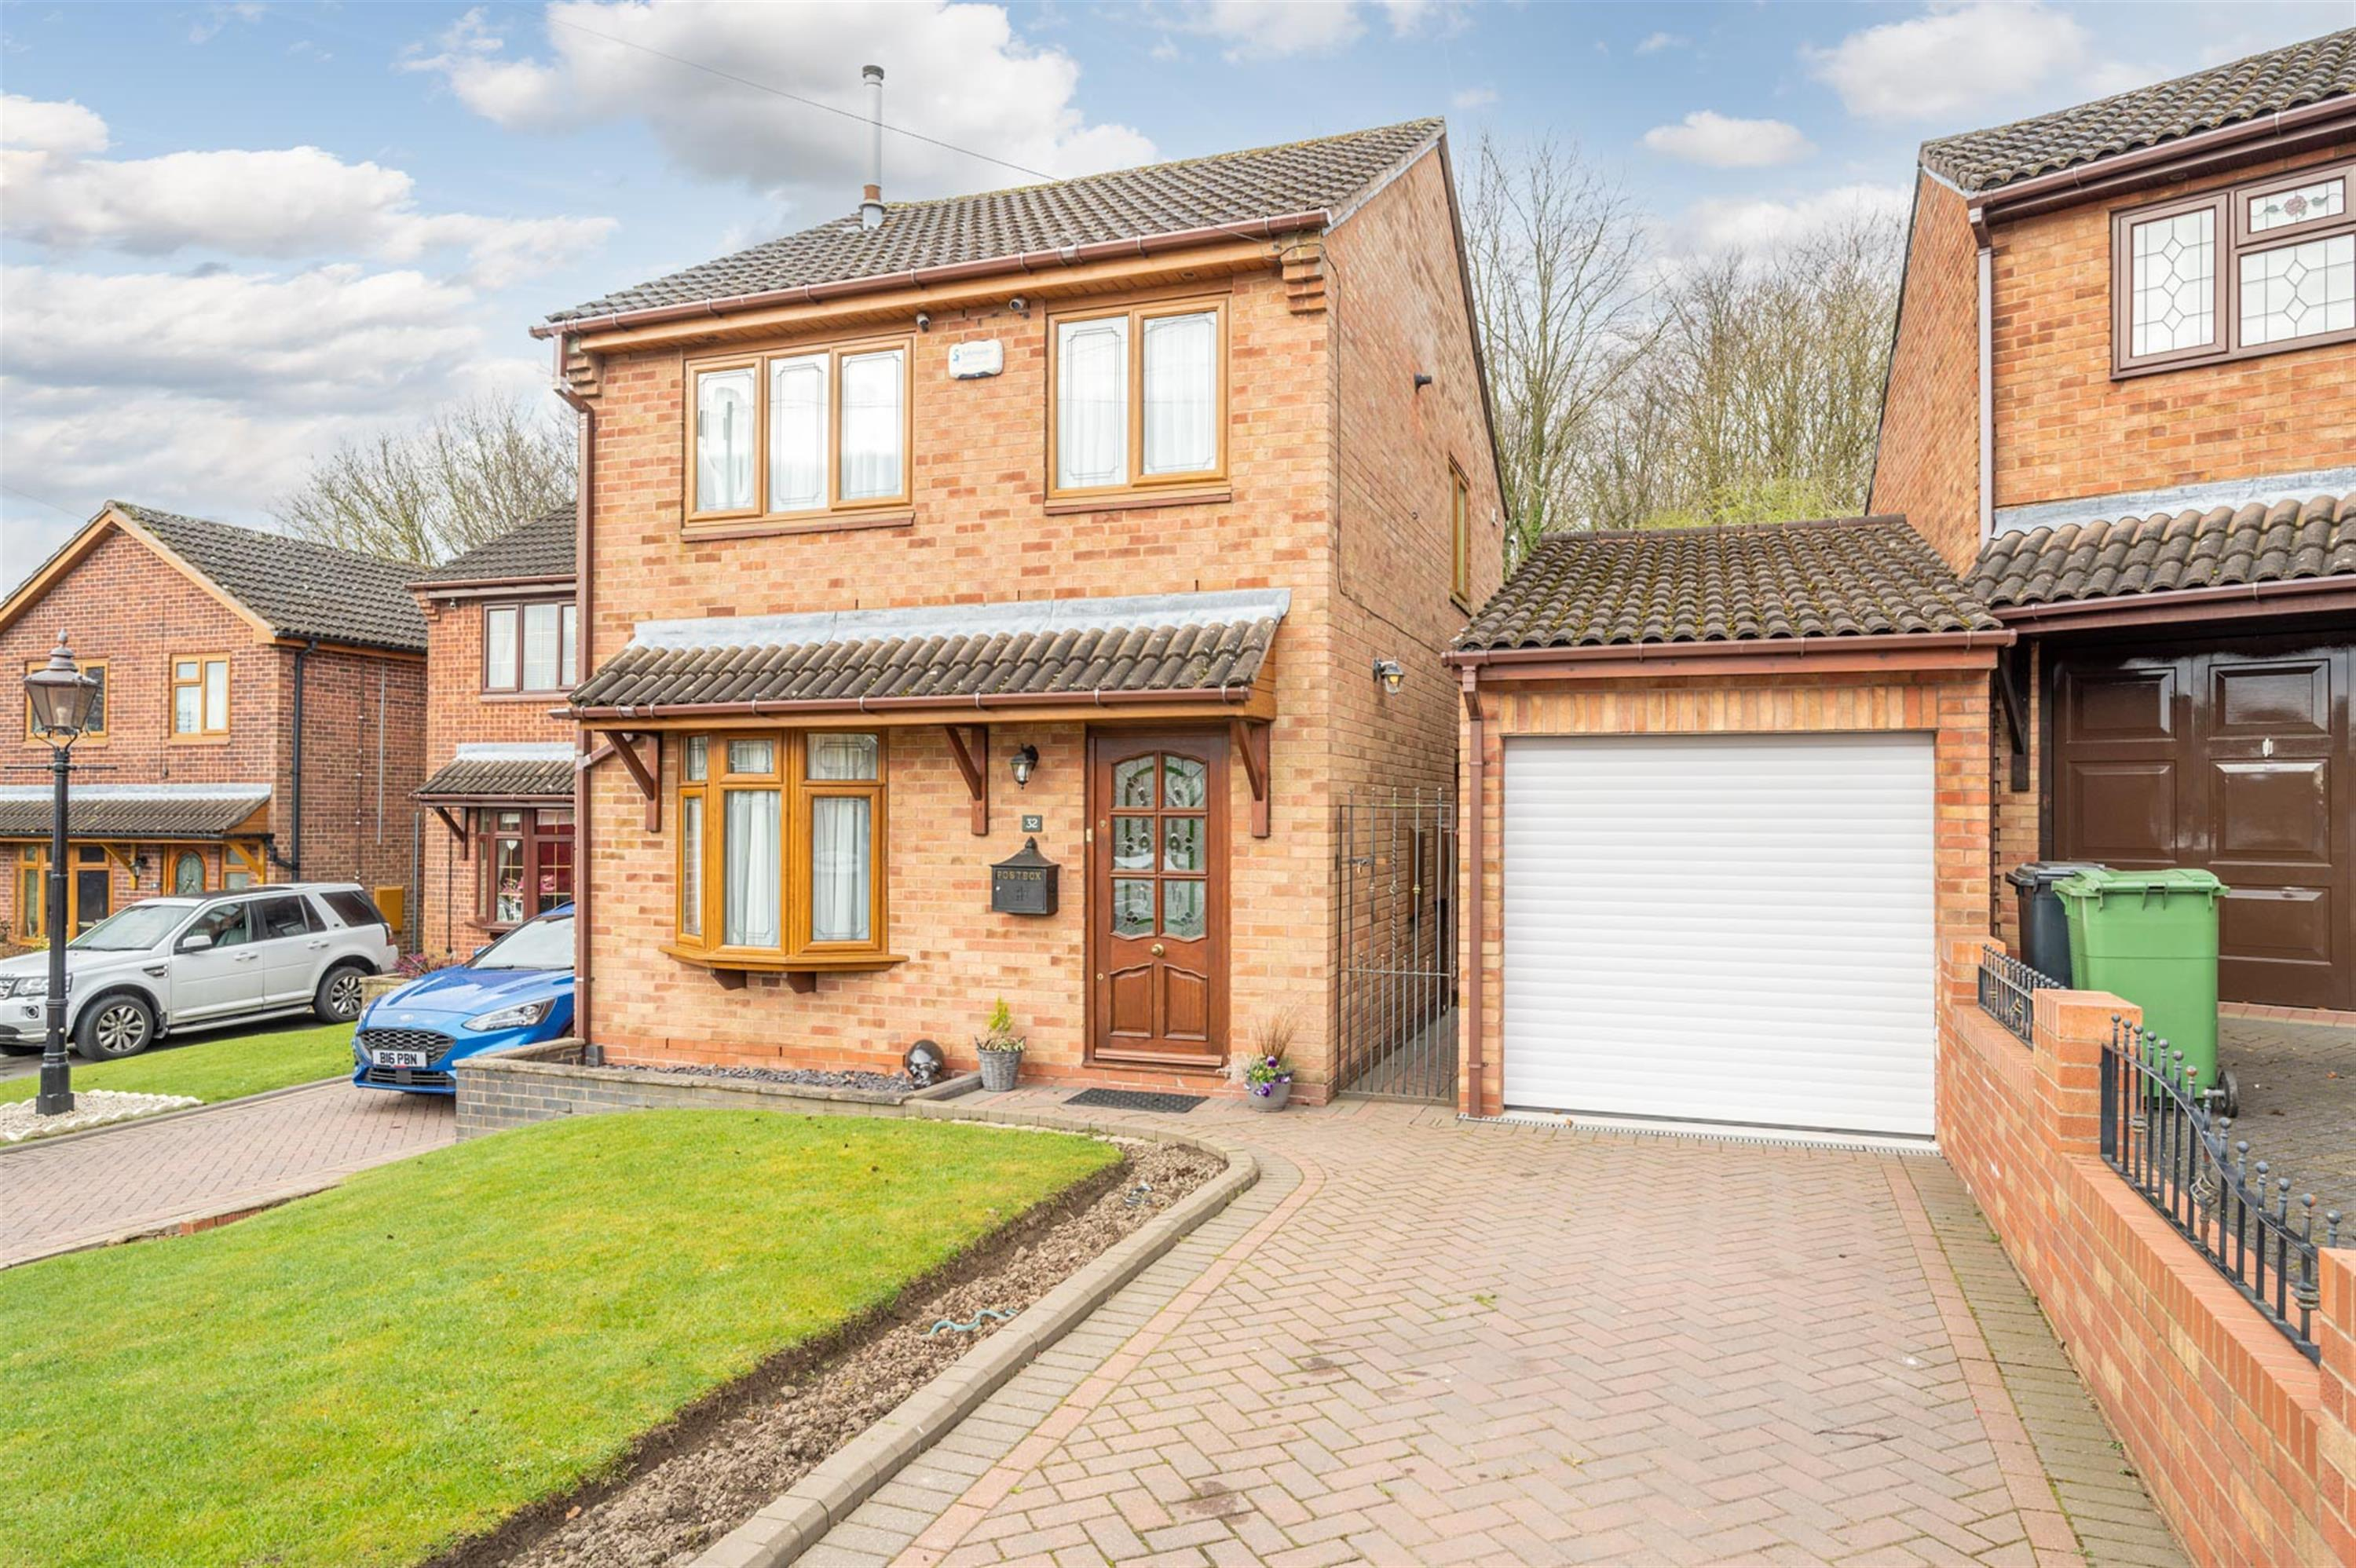 Willetts Drive, Halesowen, B63 2HR